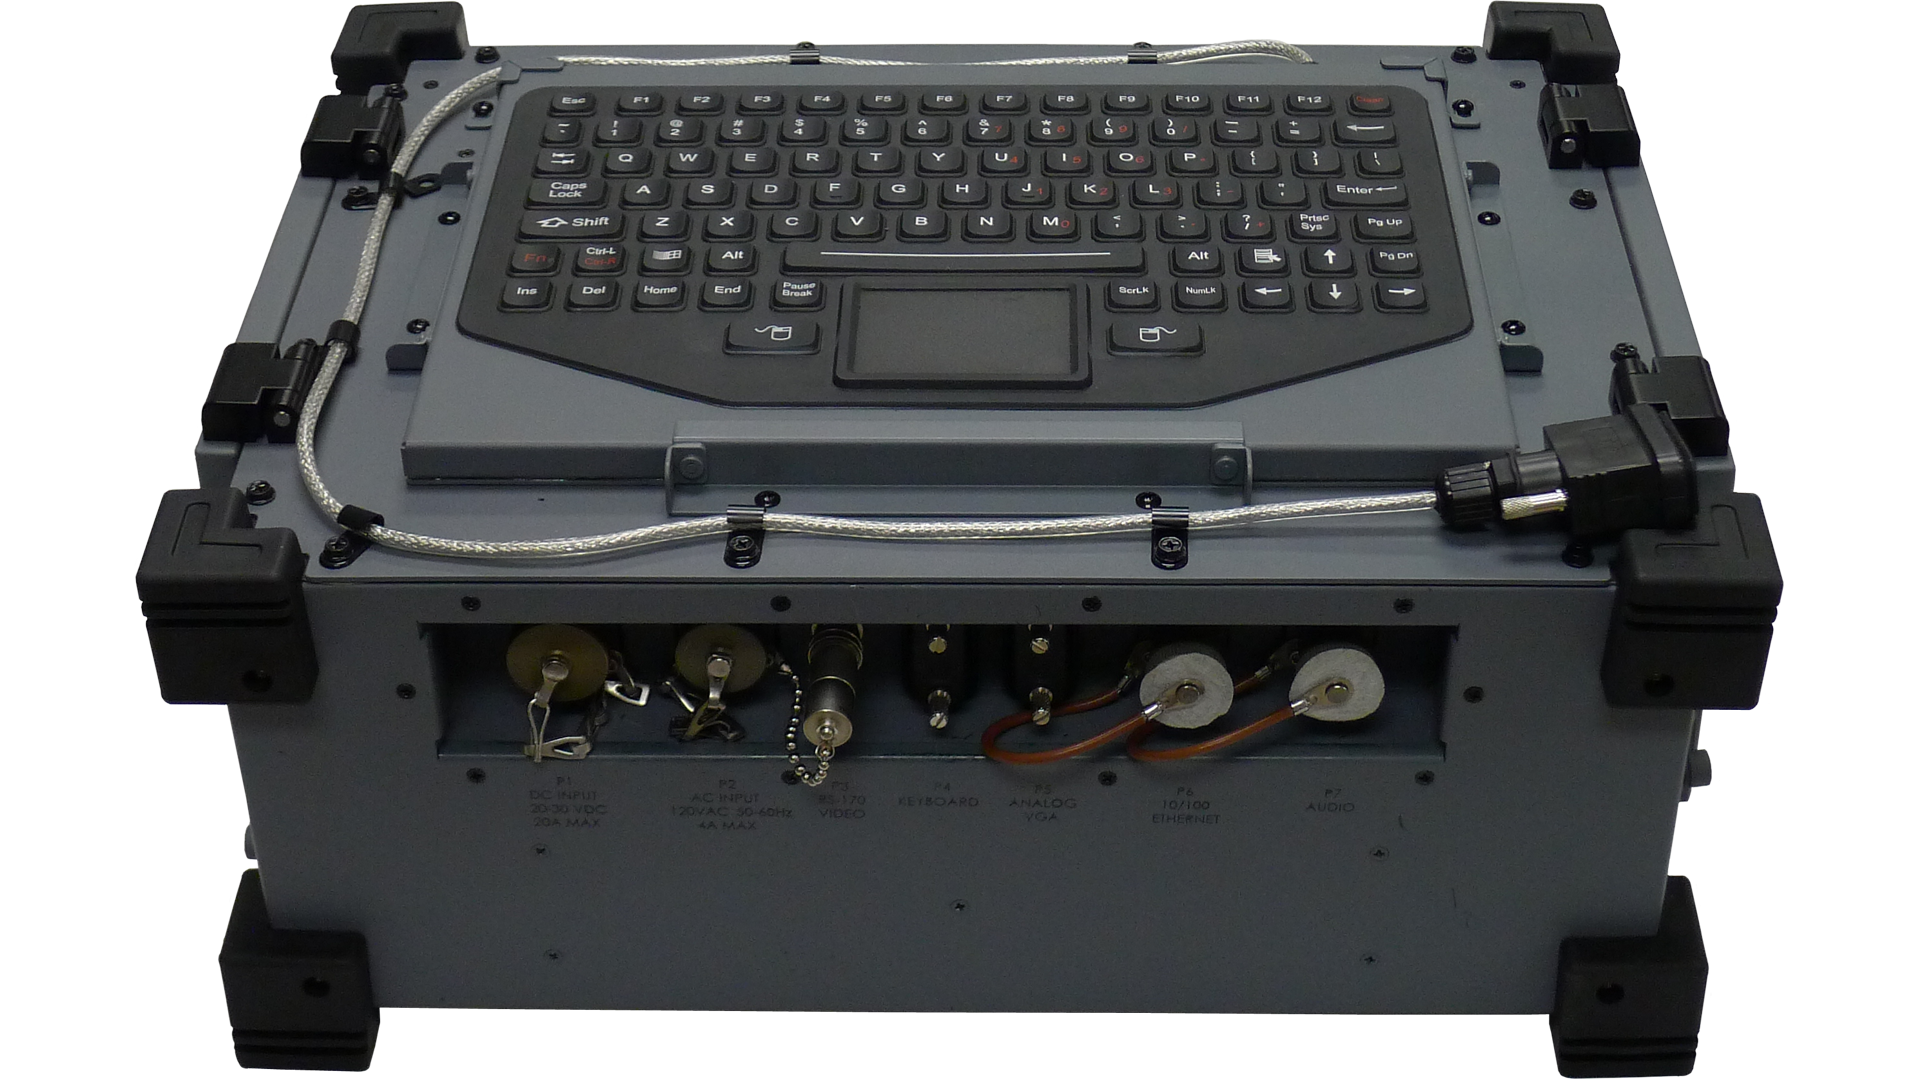 MilPAC portable high power military computer